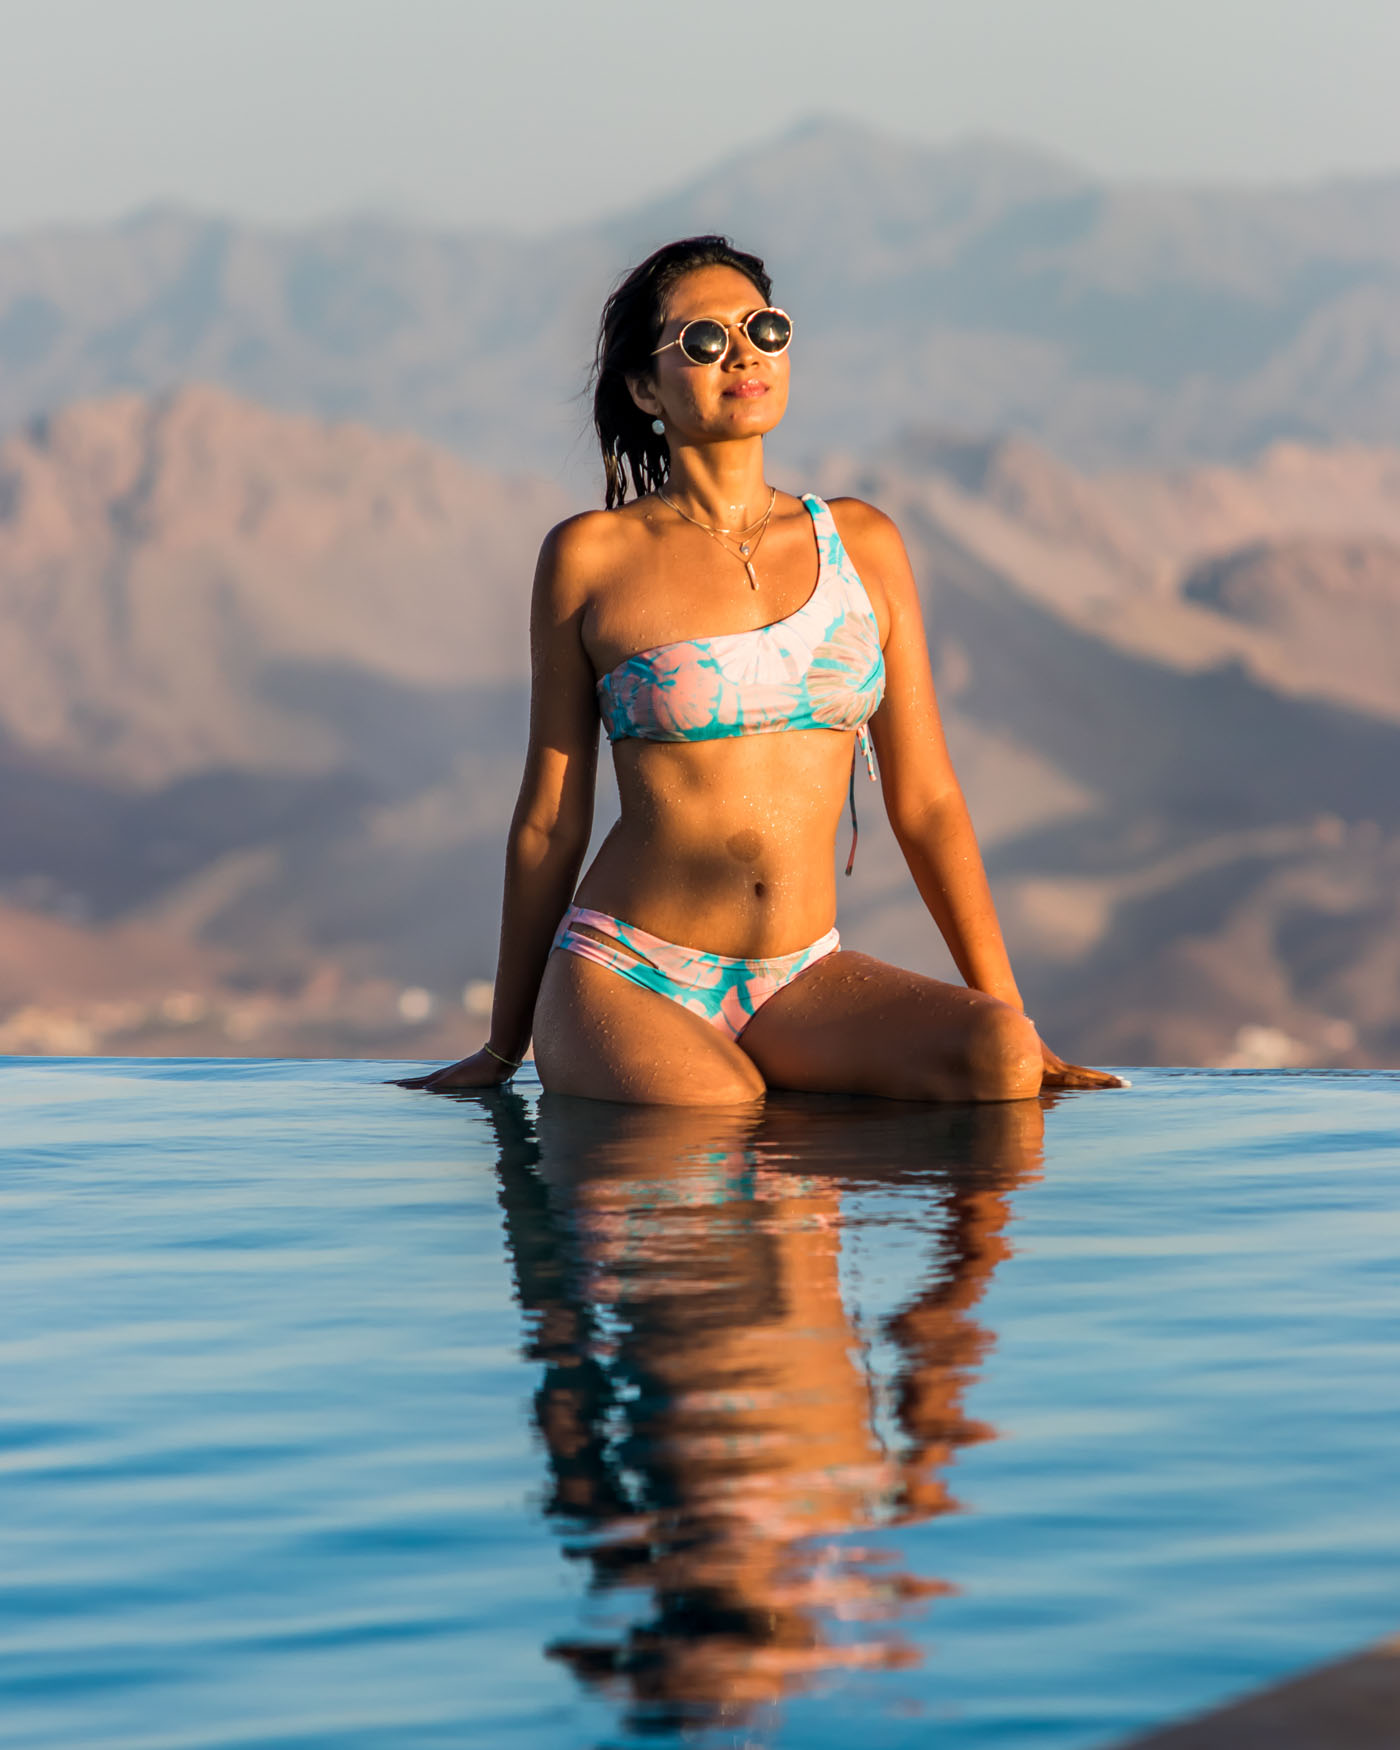 Oman_Muscat_Road_Trip_The_Chedi_Five_Star_Middle_East_Luxury_Hotel_Resort_Spa_Travel_Blogger_Indian__The_View_Jebel_Sham_Akhdar_Eco_Luxury_Resort